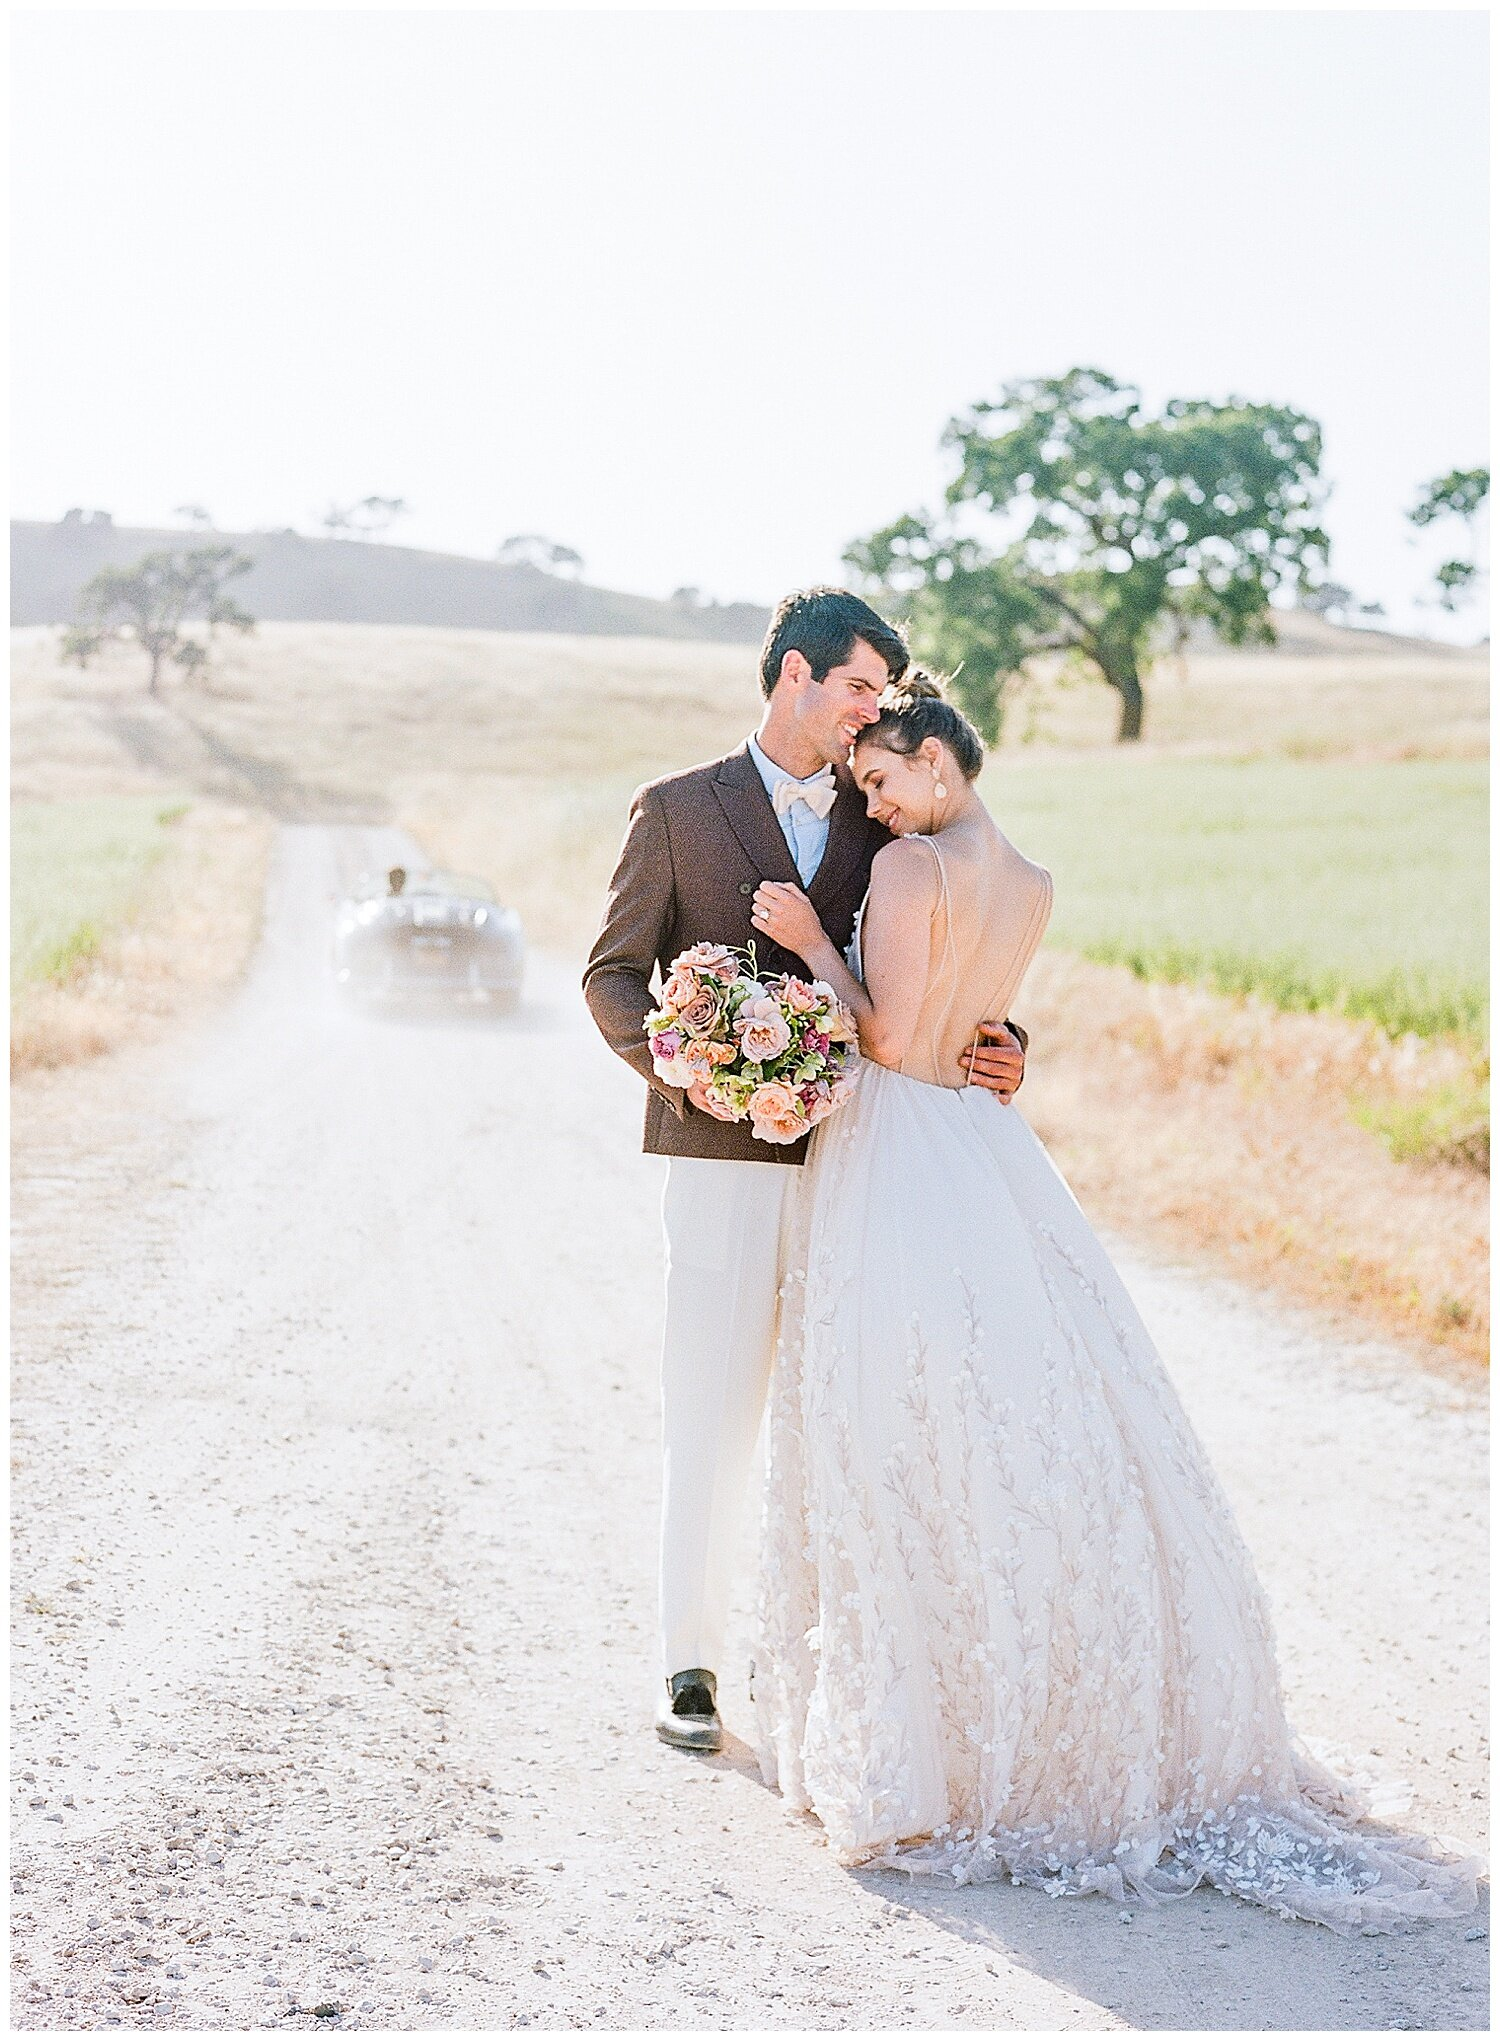 Janine_Licare_Photography_San_Francisco_Kestrel_Park_Santa_Ynez_Sunstone_Villa_Winer_Wedding_Photographer_Meadowood_Napa_Valley_Sonoma_0080.jpg